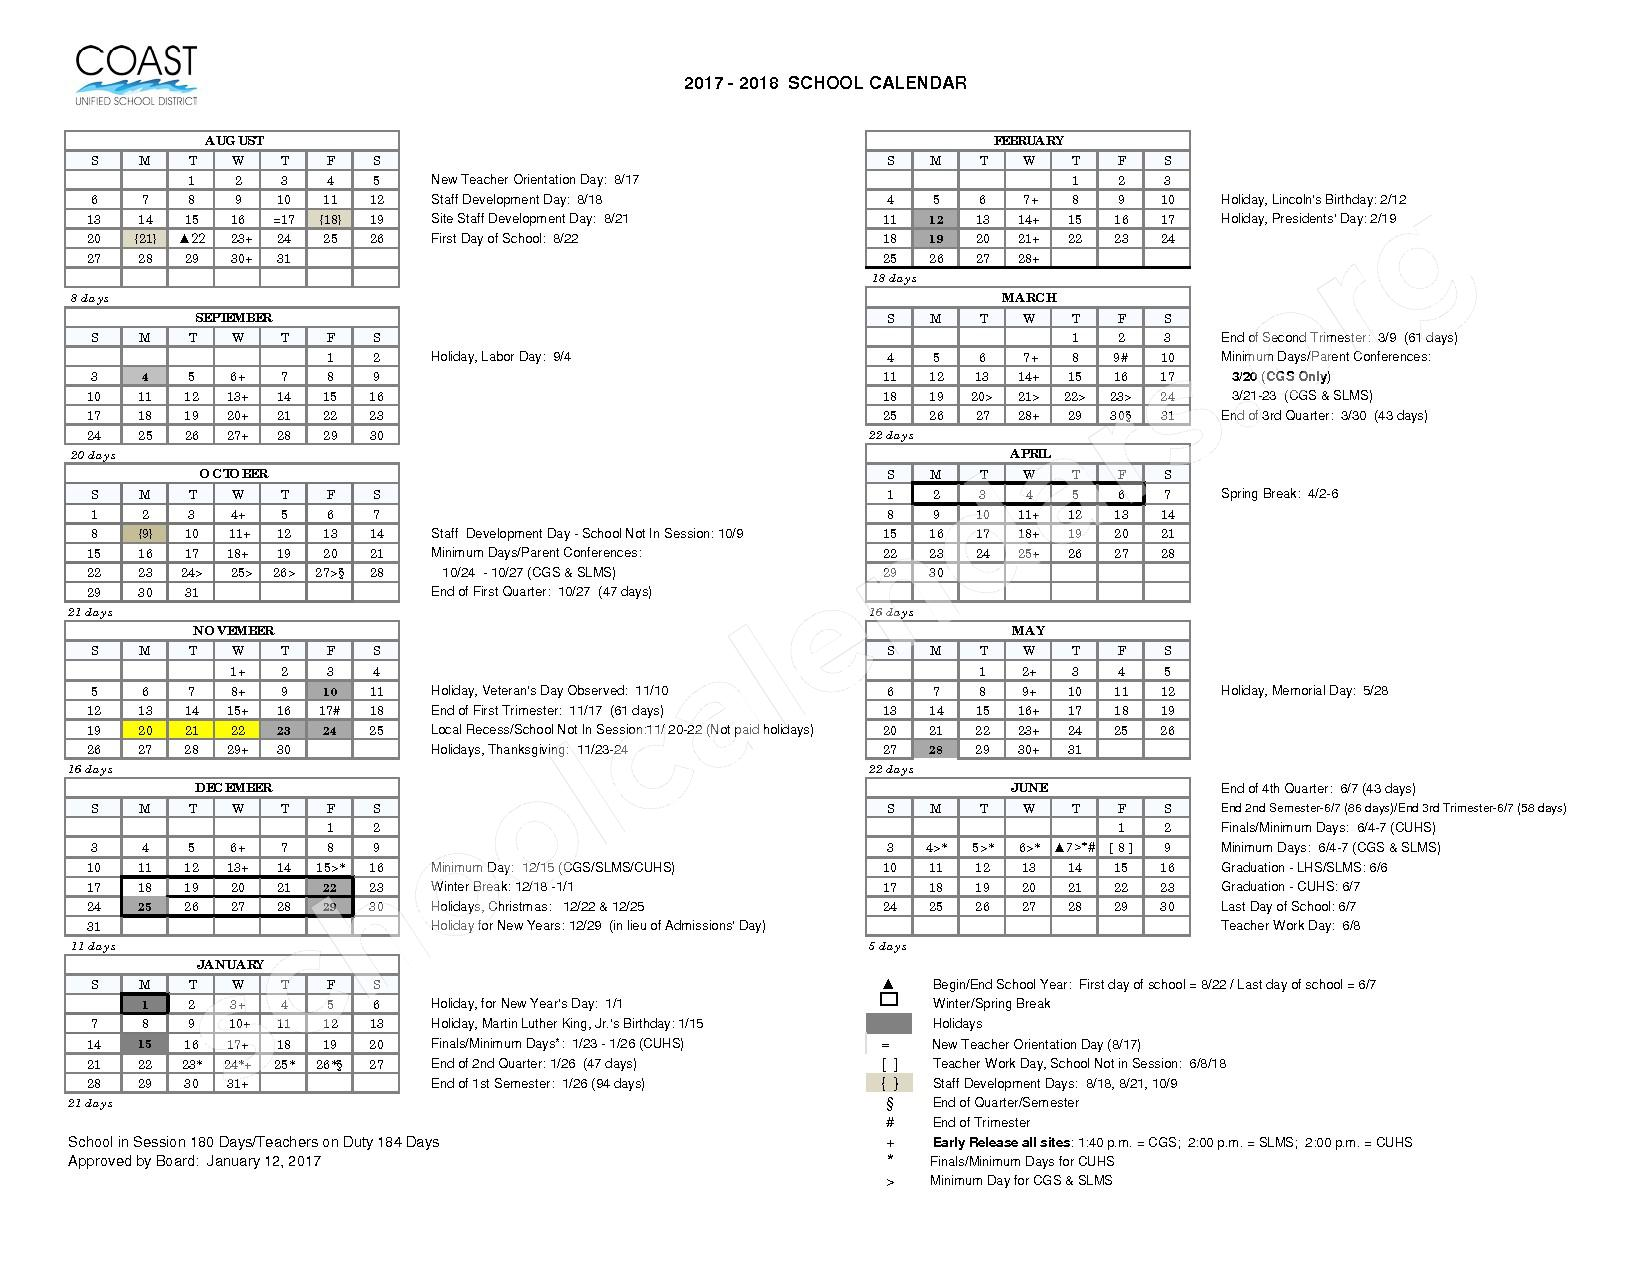 2017 - 2018 District Calendar – Coast Unified School District – page 1